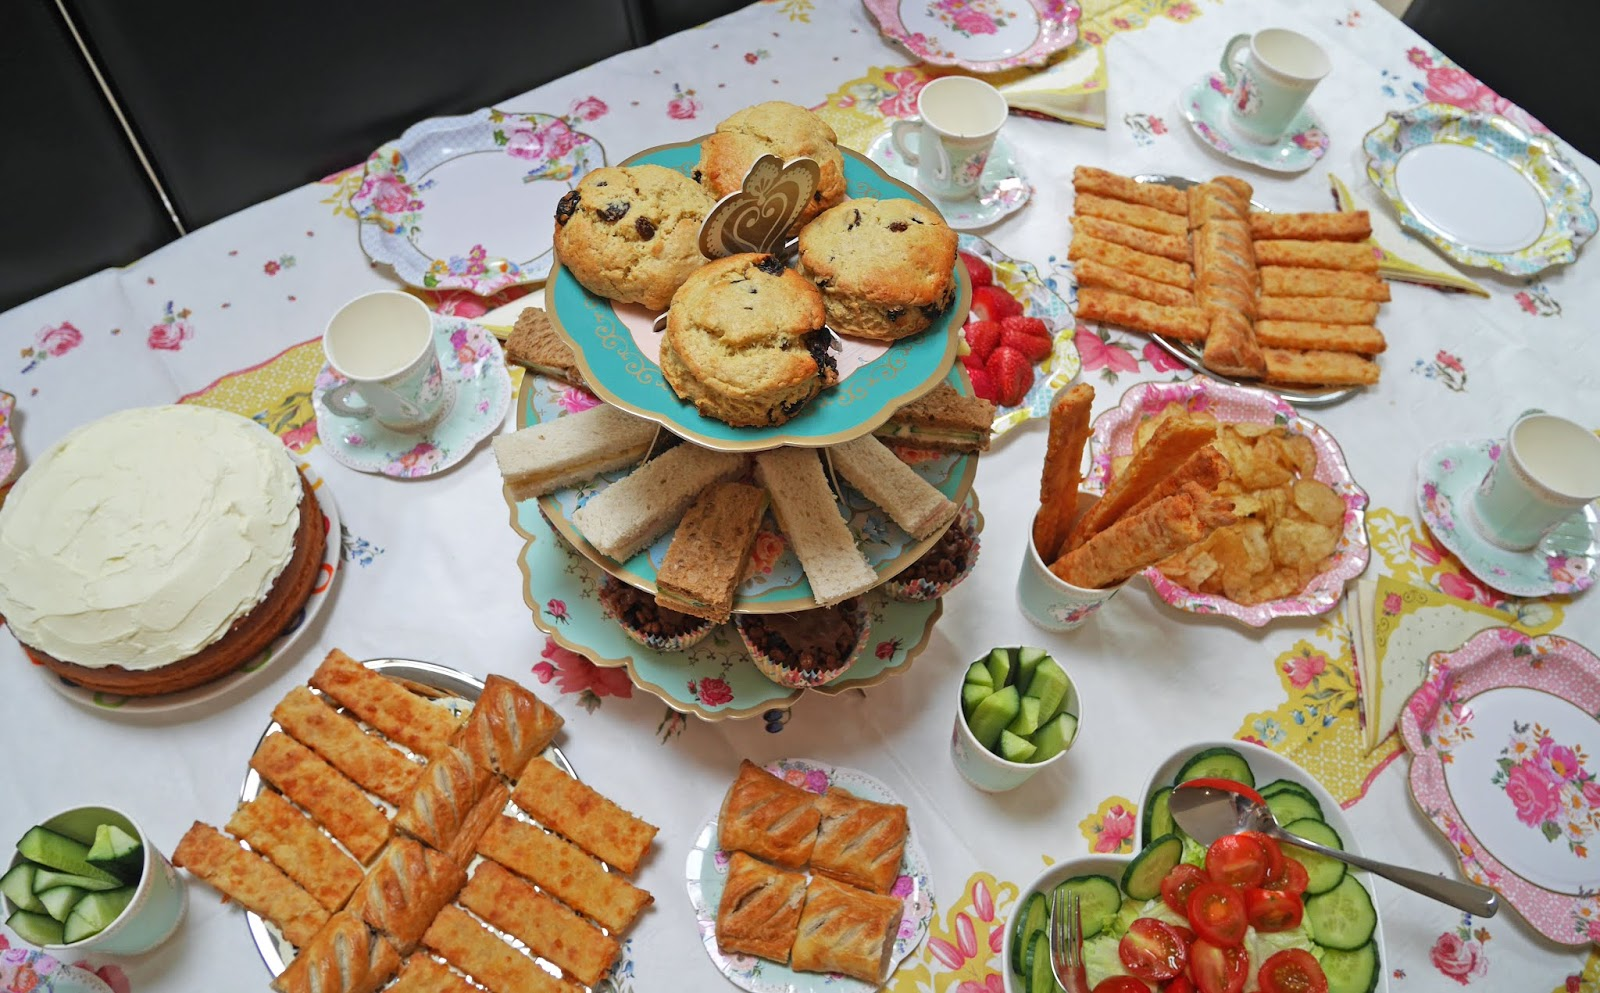 Truly Scrumptious afternoon tea in collaboration with Talking Tables